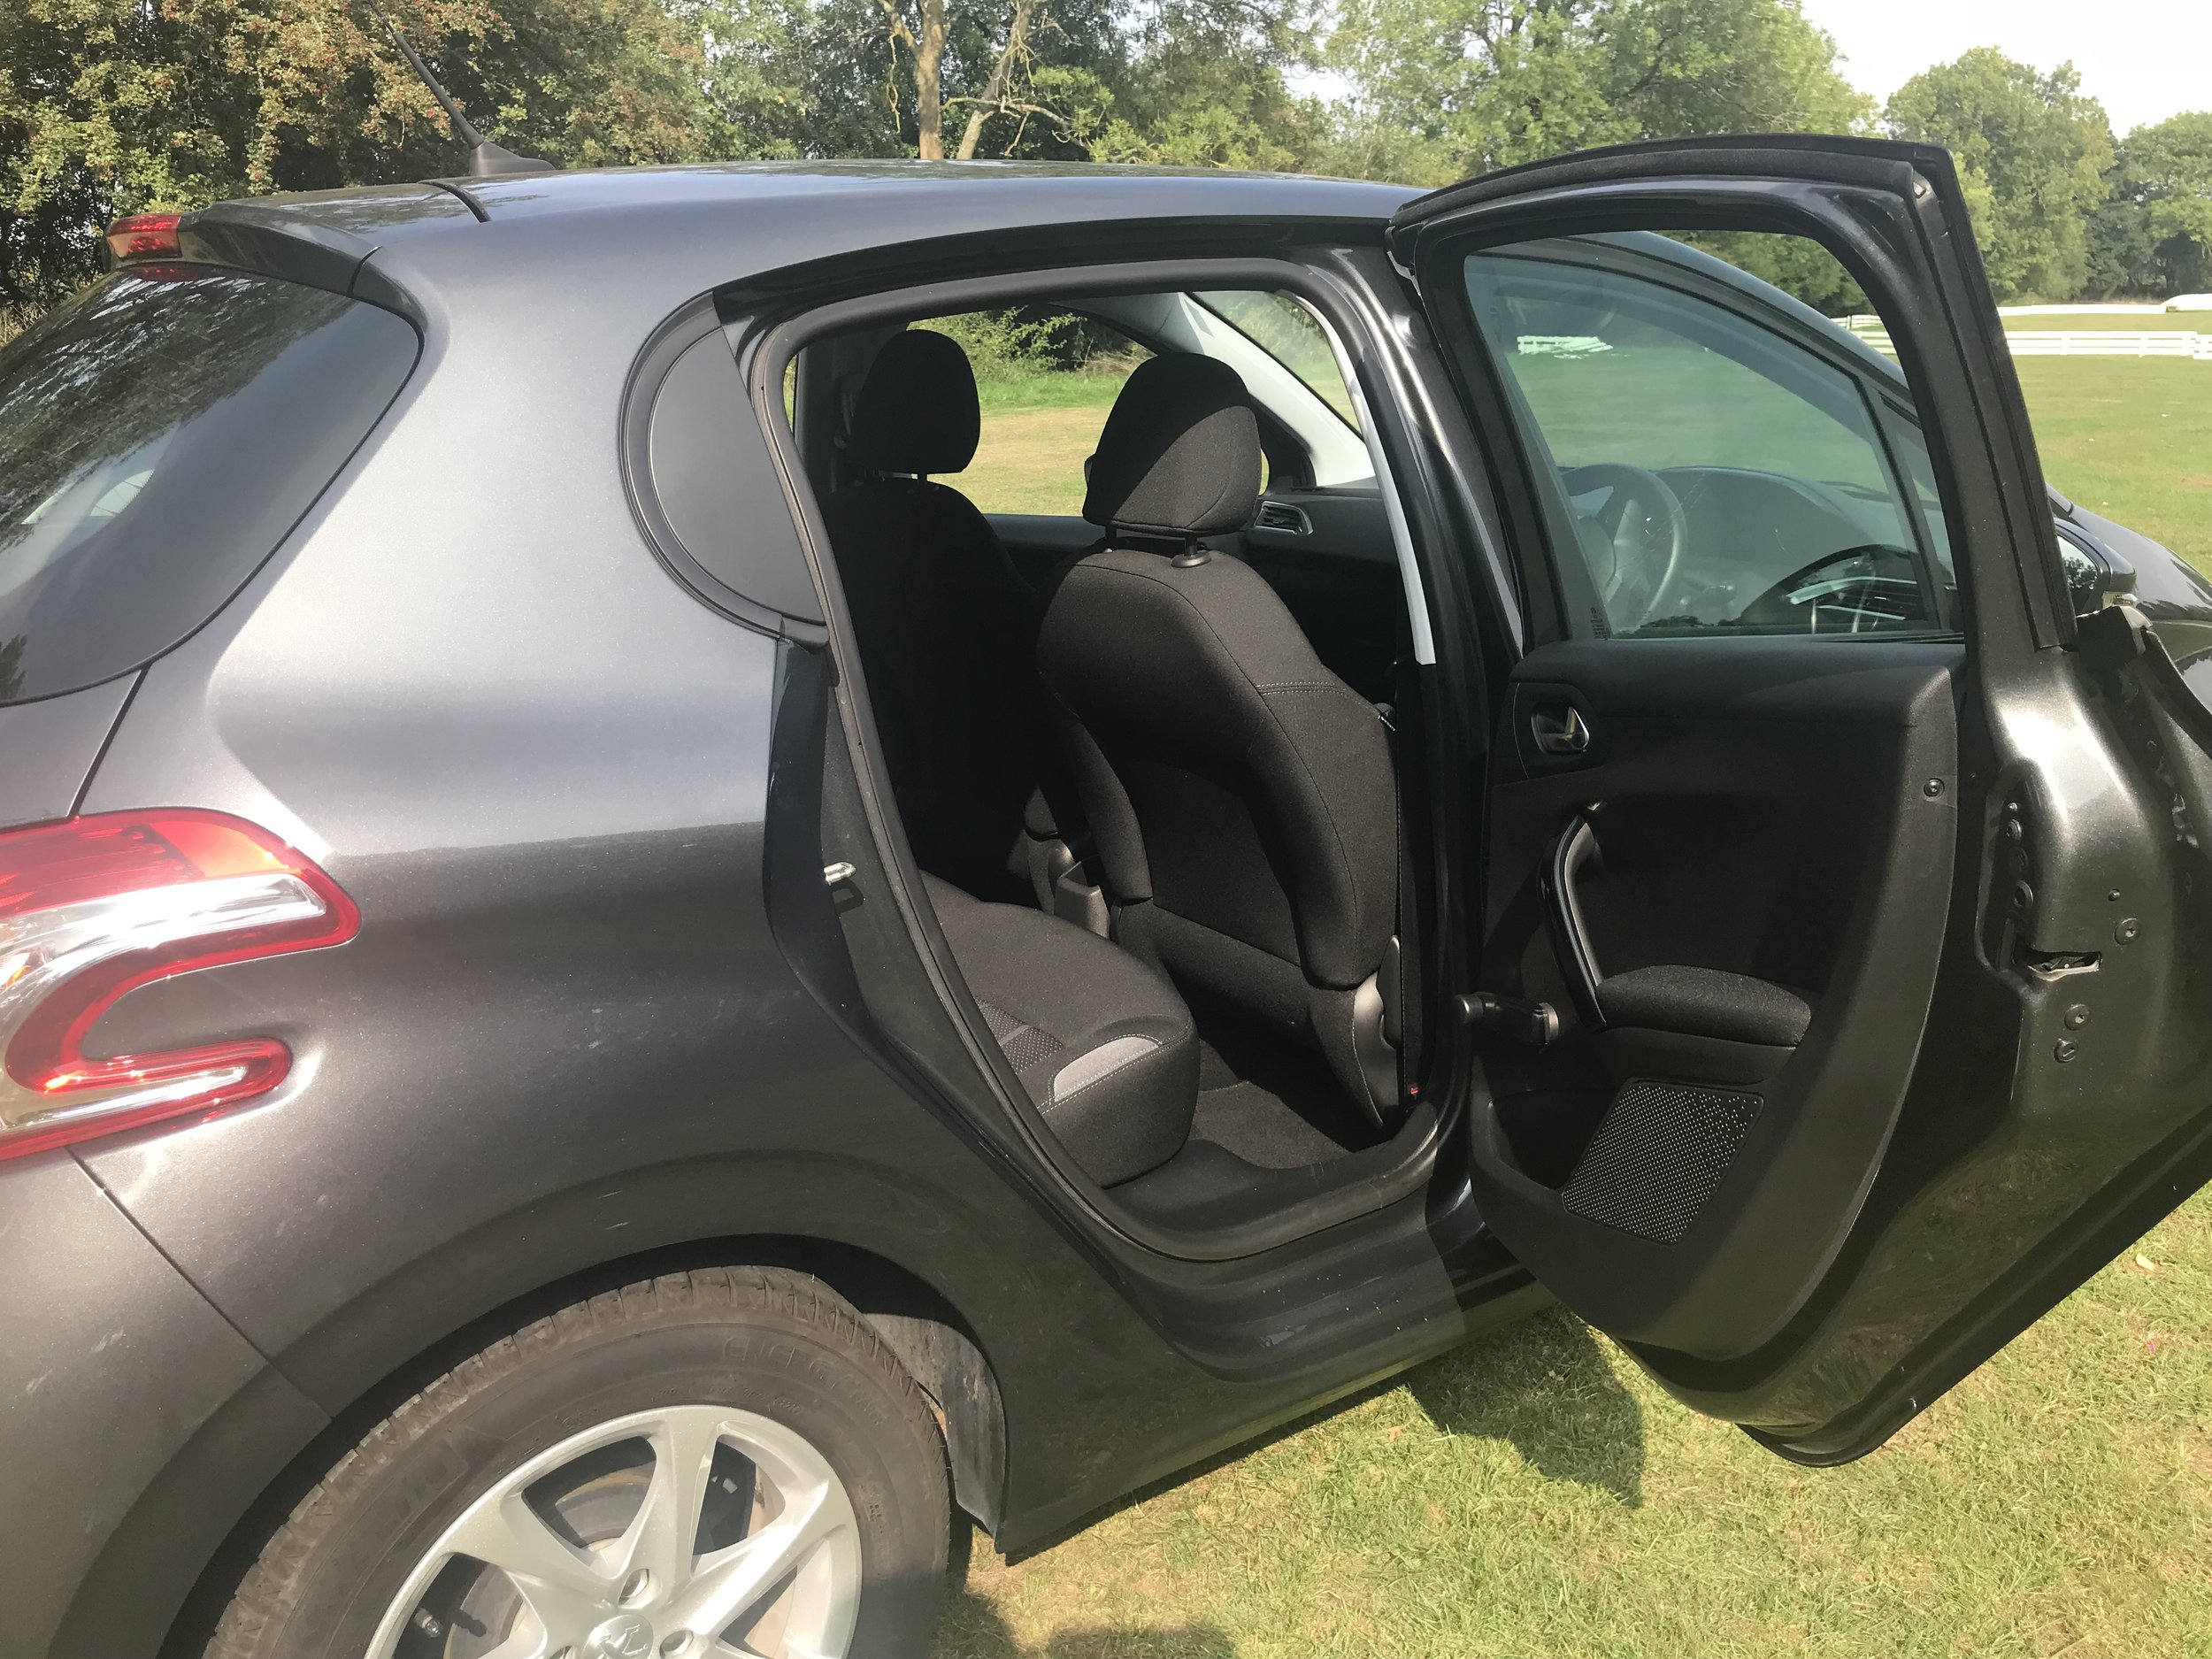 peugeot-208-vti-active-forsale-regalmotion-regalpreowned-usedcar-redditch-bromsgrove-worcestershire-6479-23.jpeg